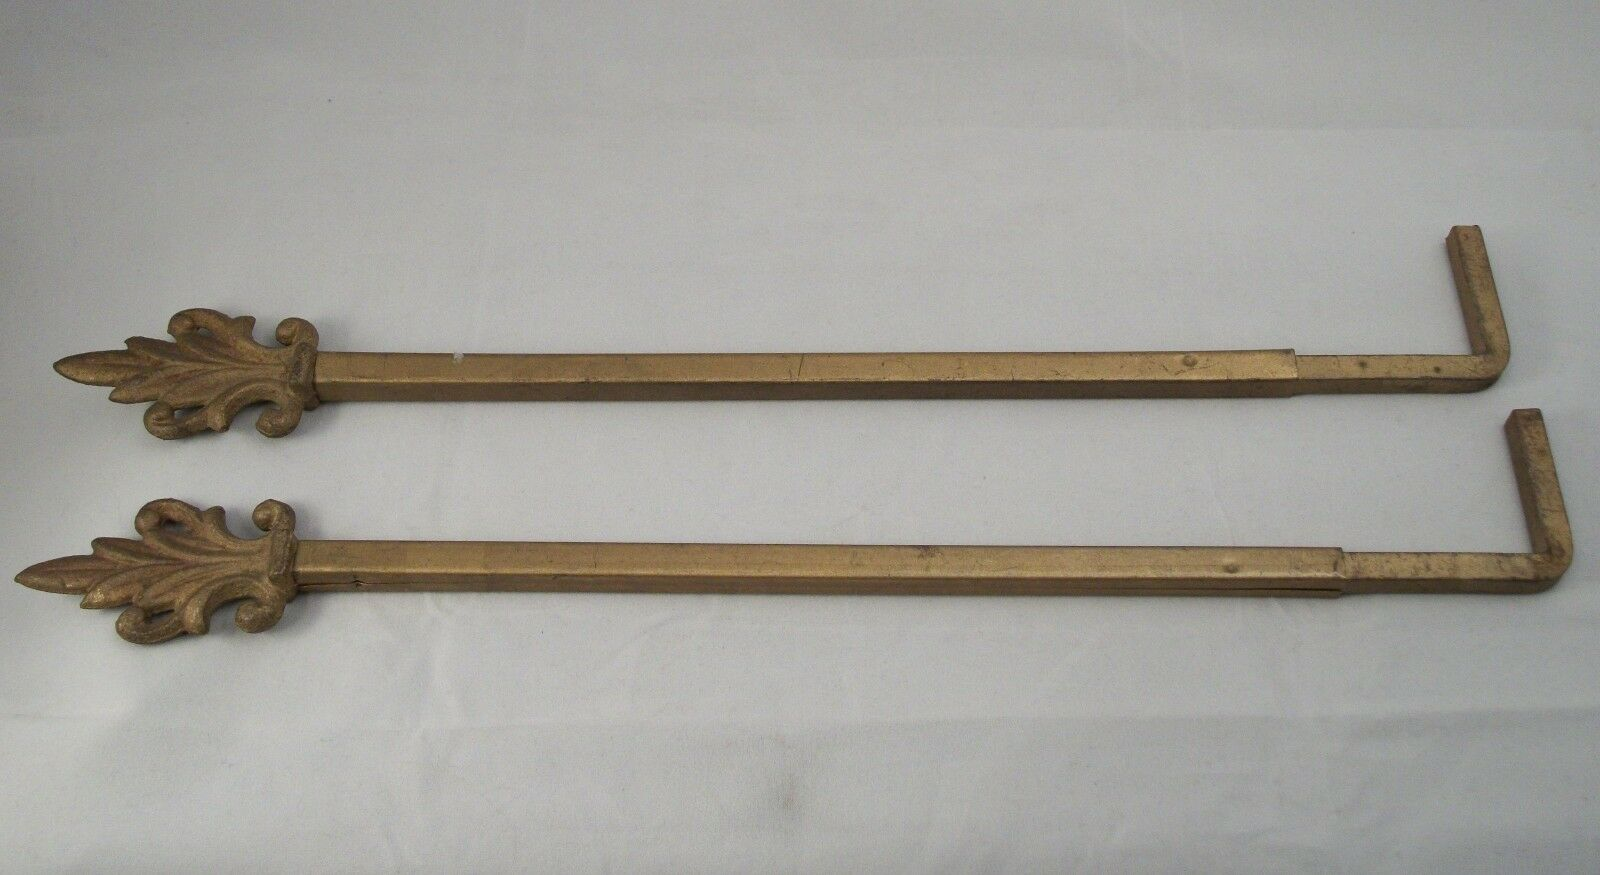 Antique Swinging Curtain Rod Arm Vintage Drapery Adjustable Victorian Art Deco